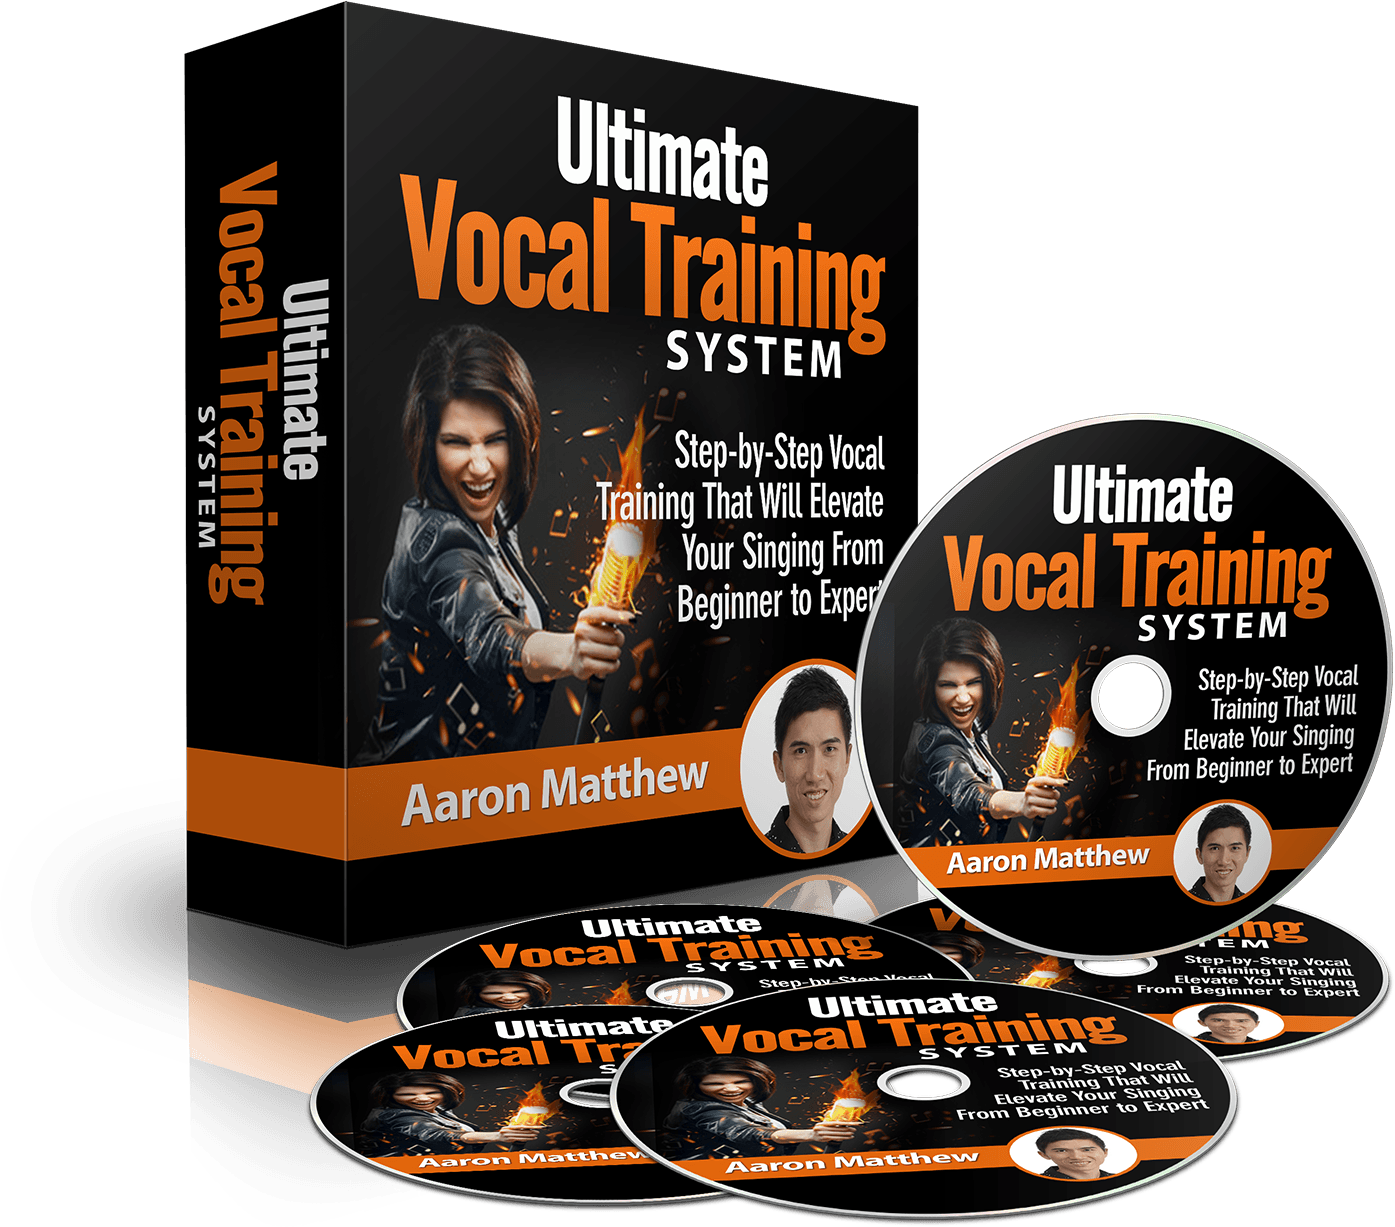 Ultimate Vocal Training System Sales Page